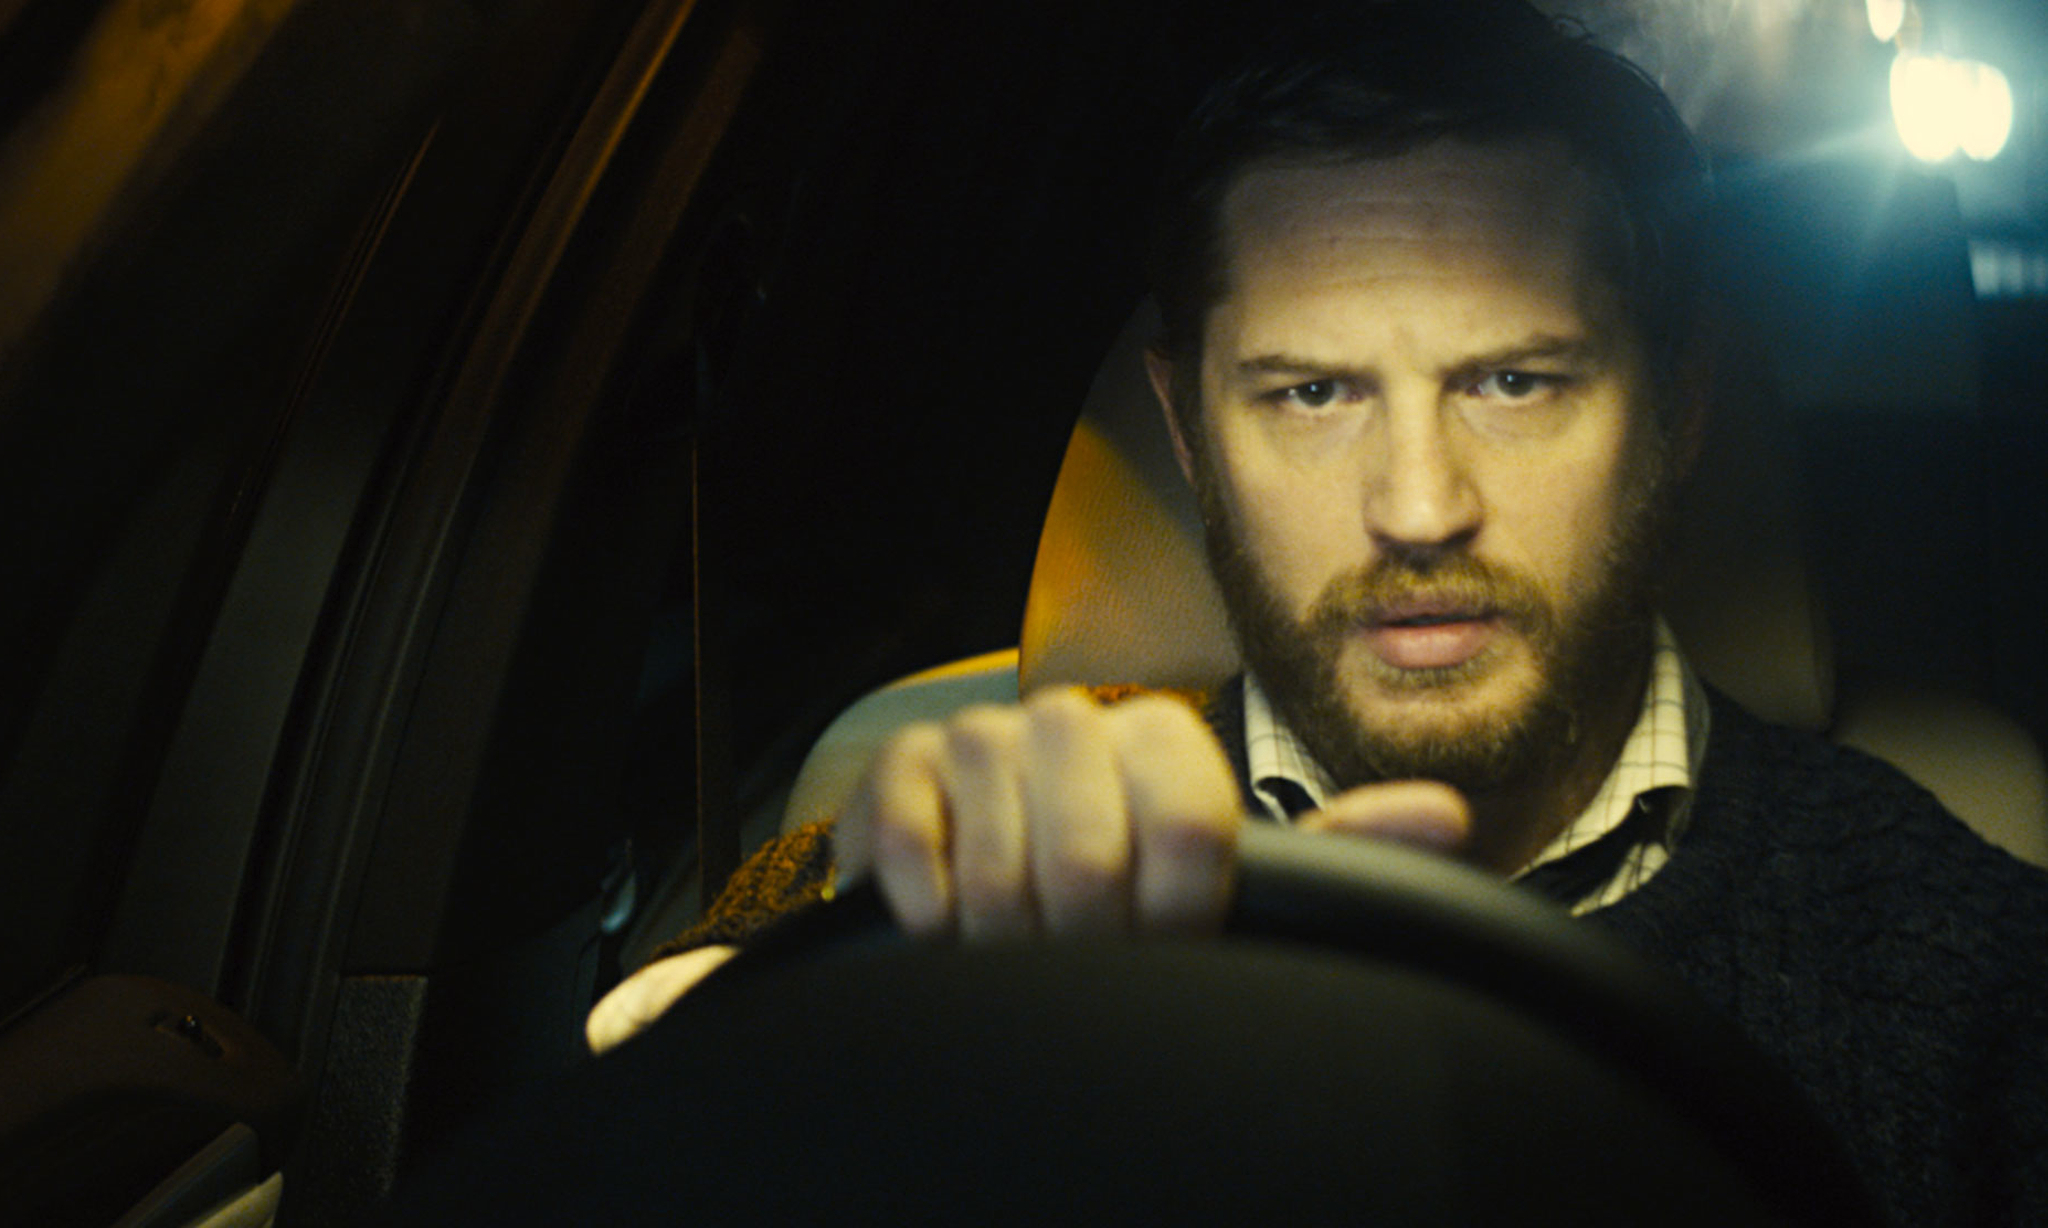 'Mastery of small, telling gestures': Tom Hardy as a man who goes awol in Locke